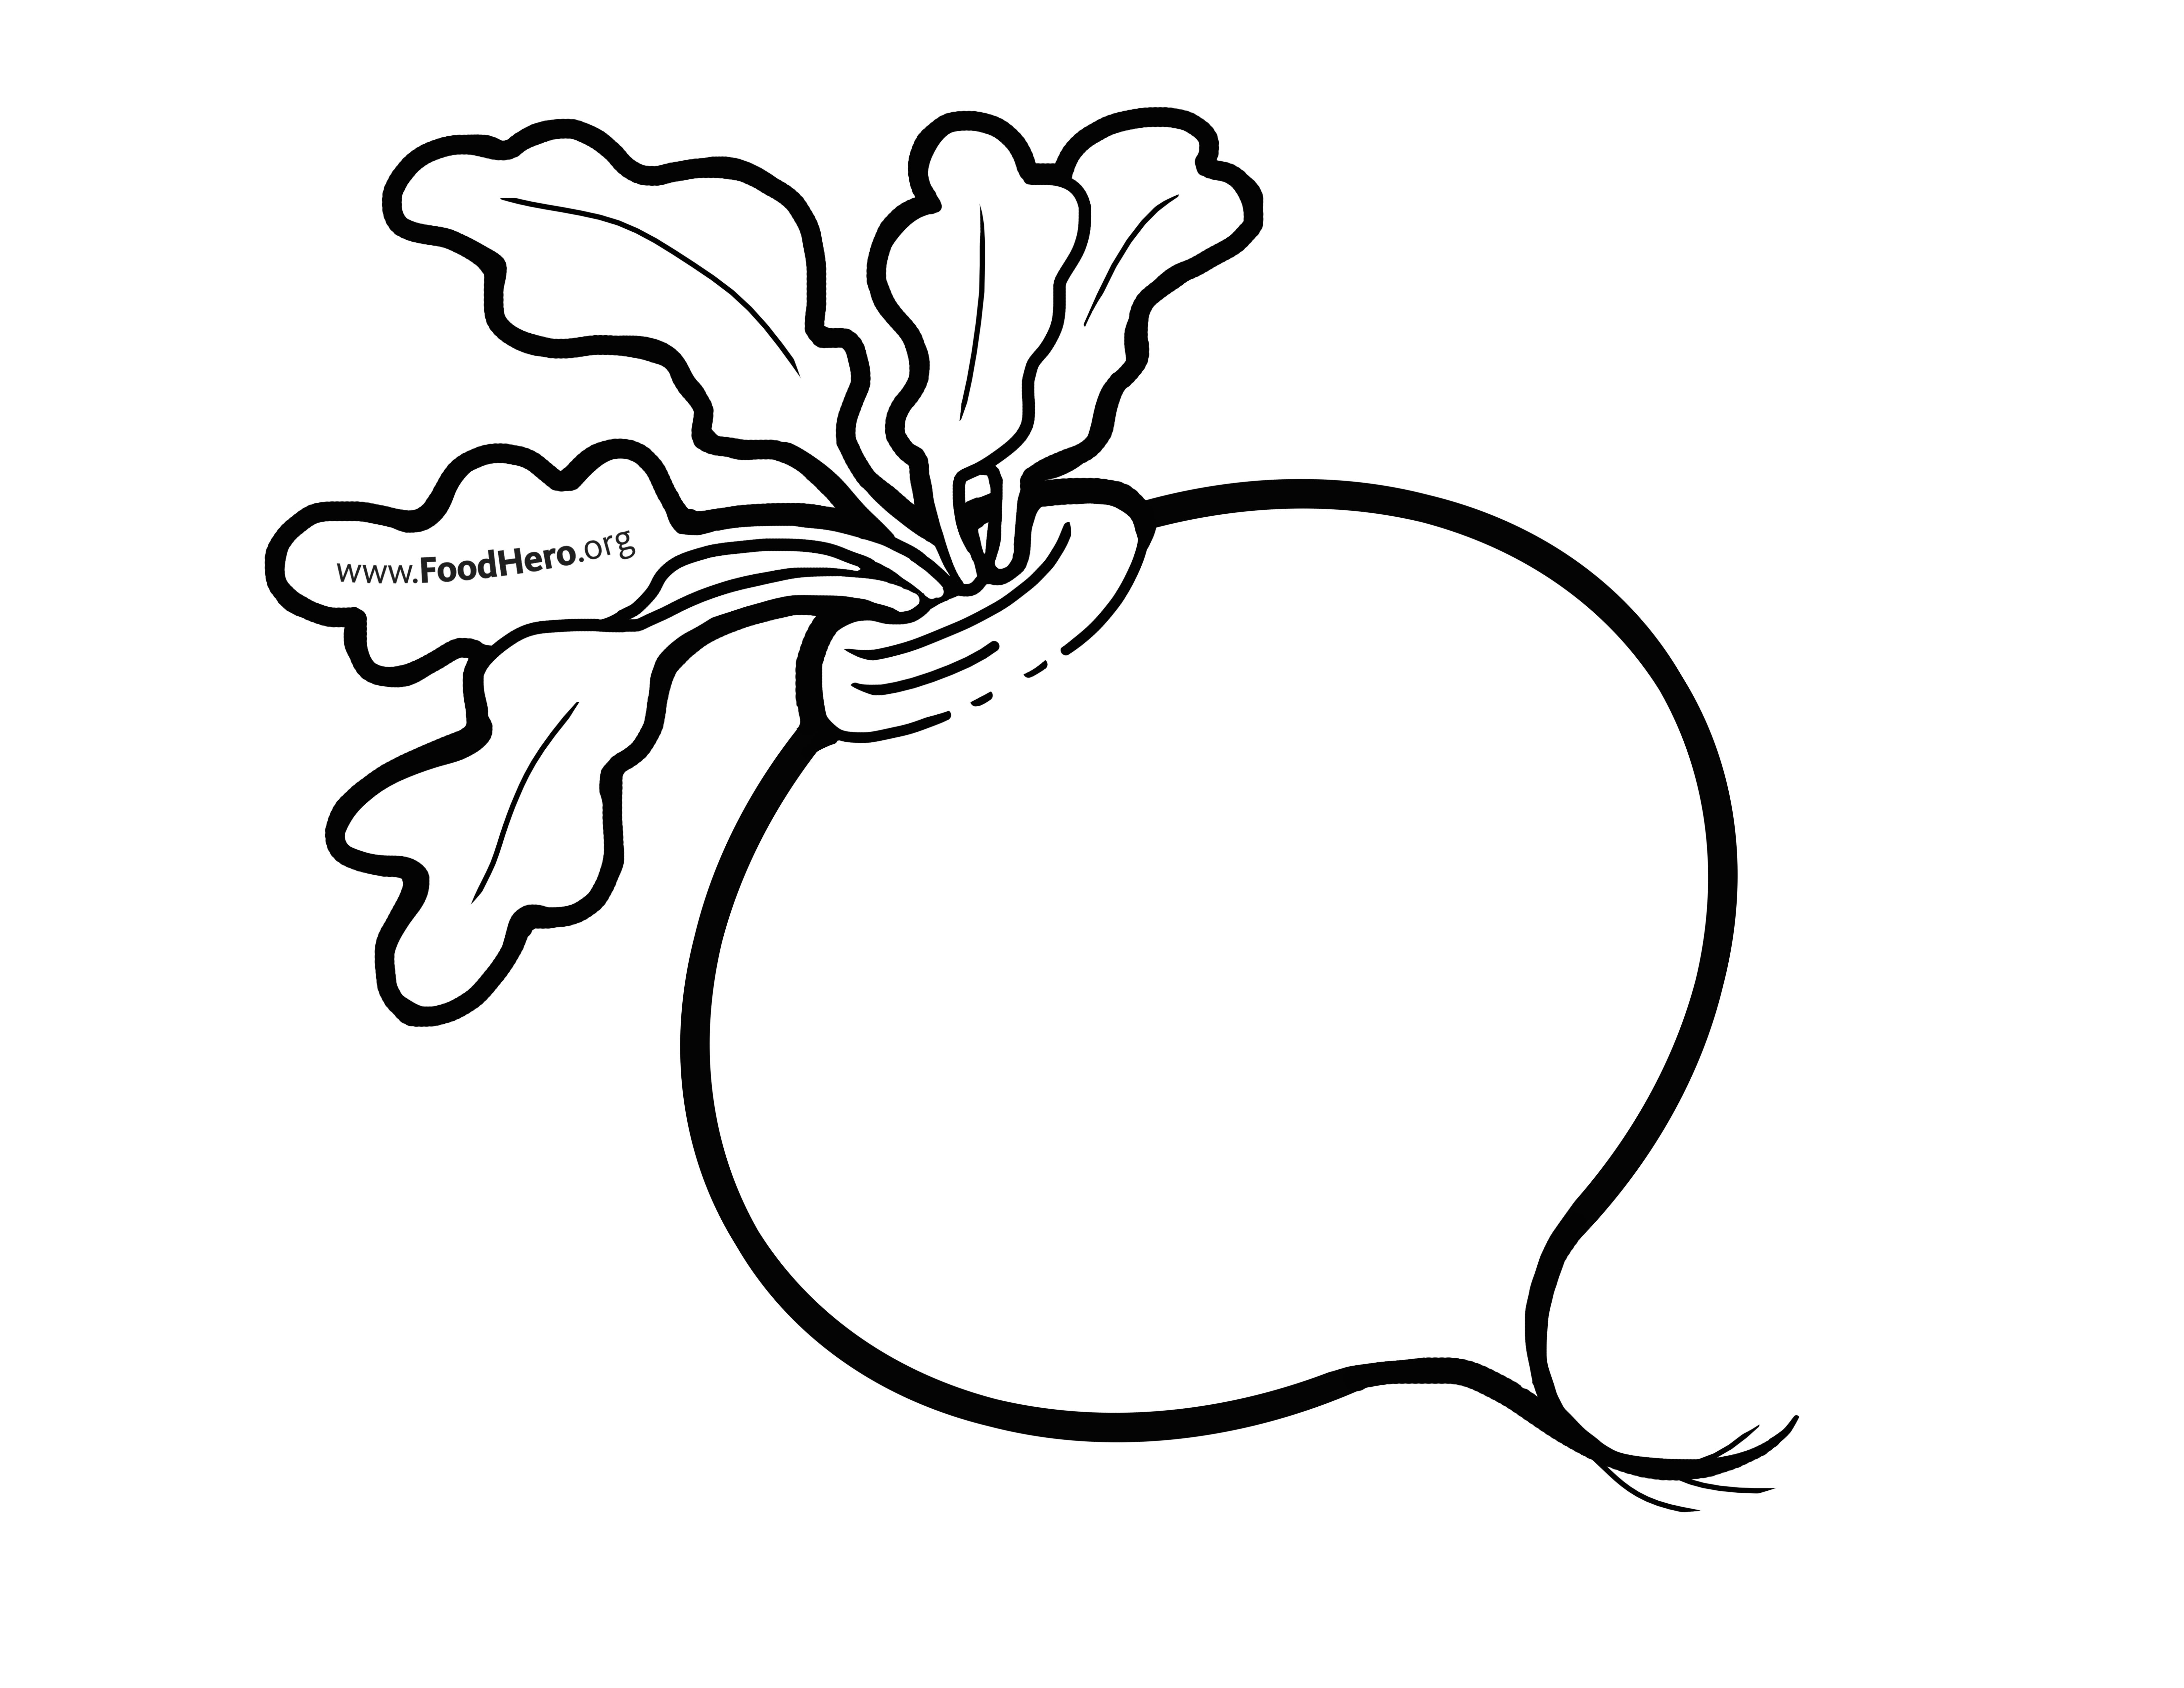 turnip pictures color turnip drawing at getdrawings free download turnip color pictures